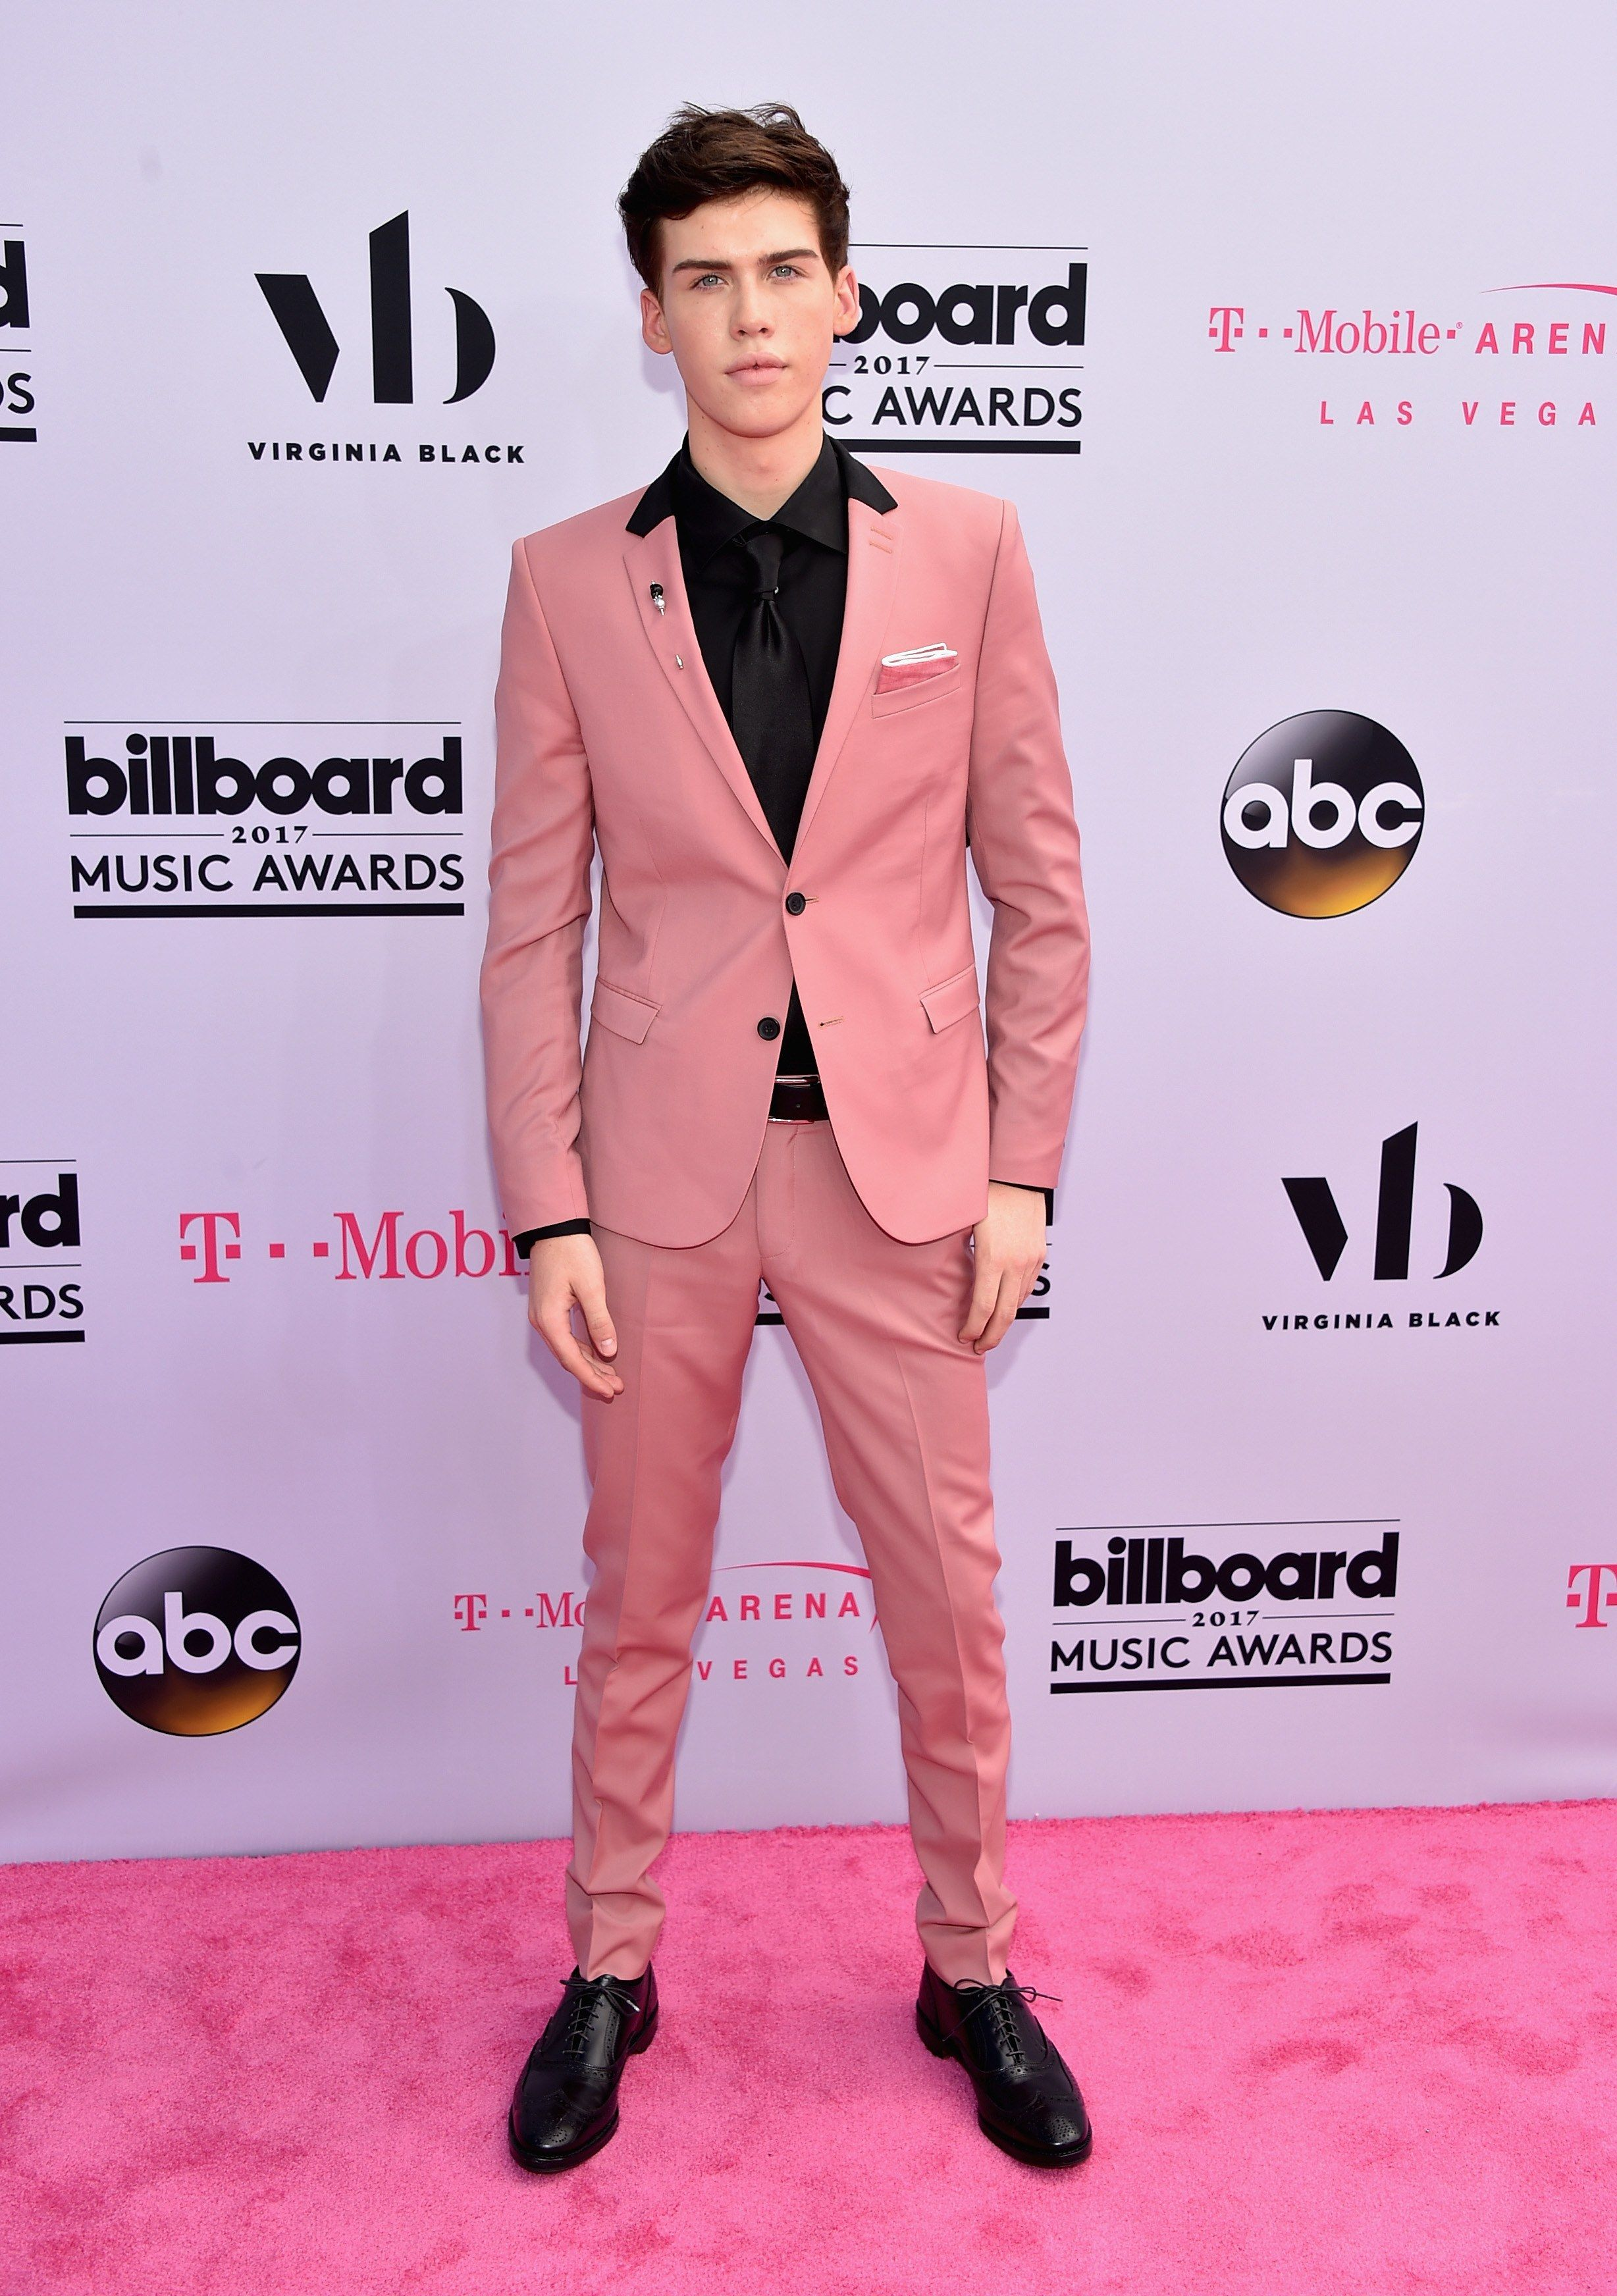 Billboard Music Awards 2017: Fashion—Live From the Red Carpet